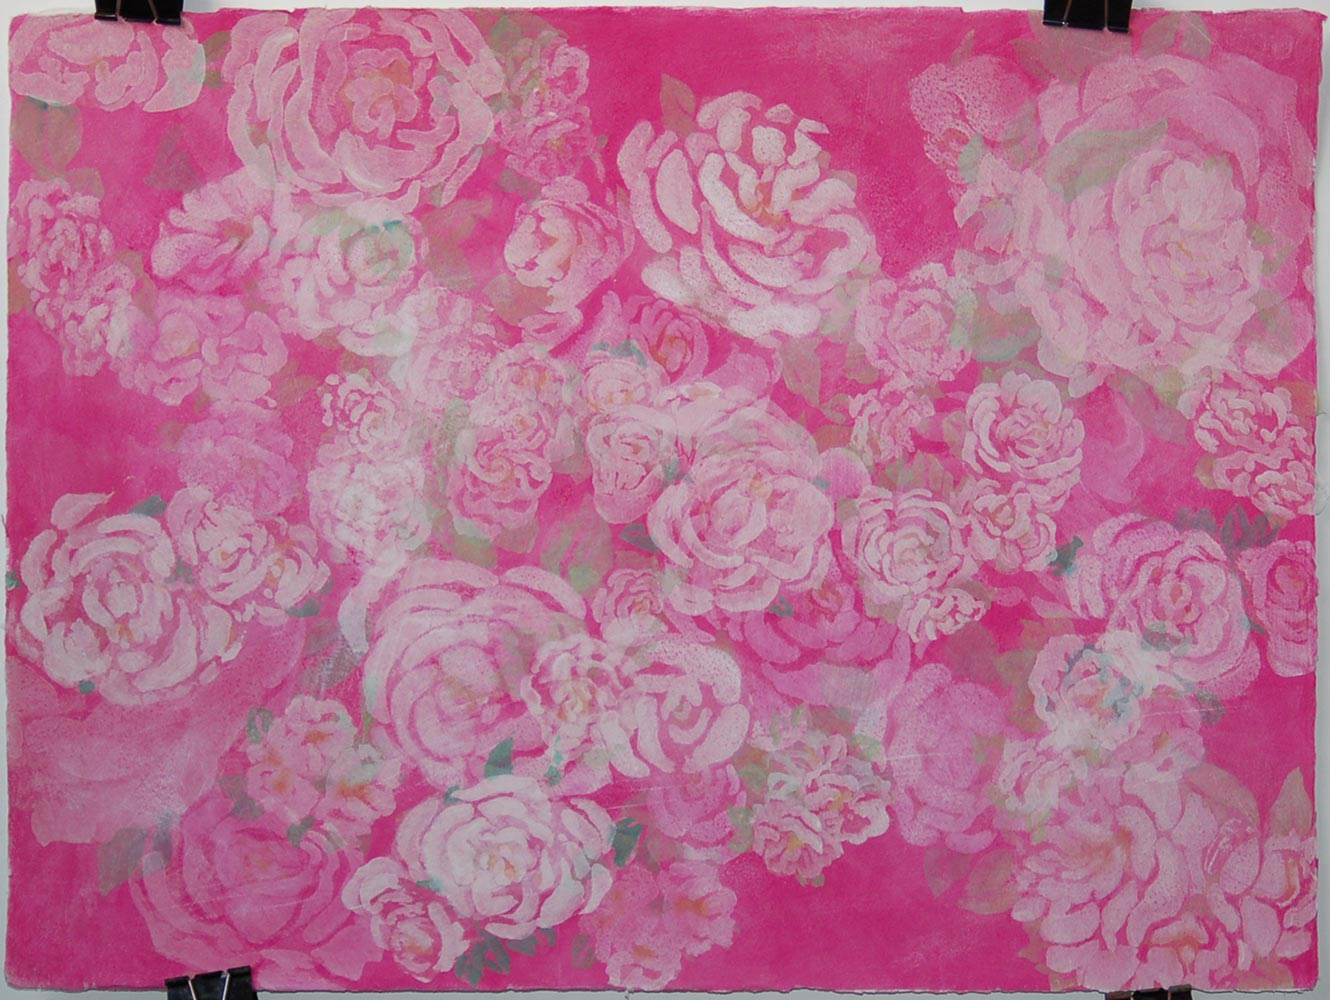 white-and-pink-flowers-on-paper